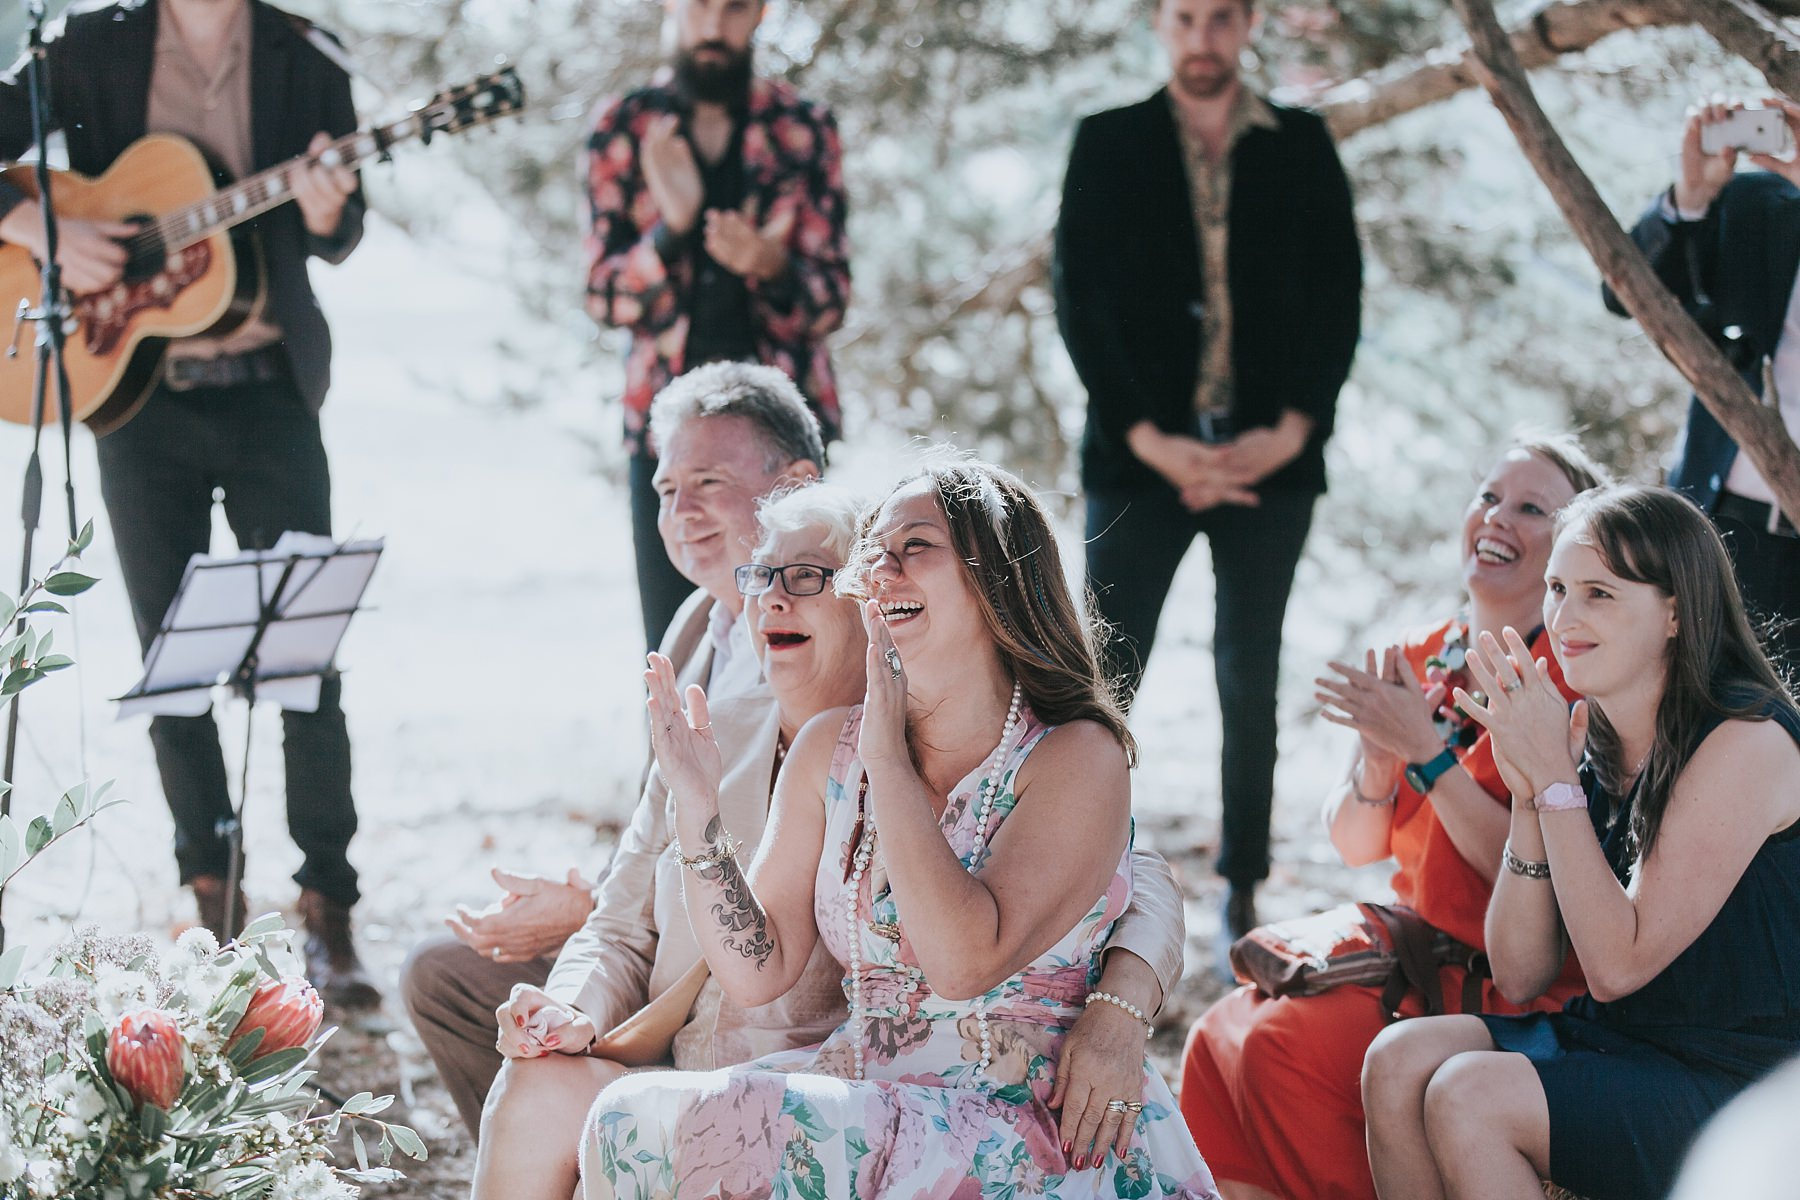 narnu farm wedding guests excited to celebrate